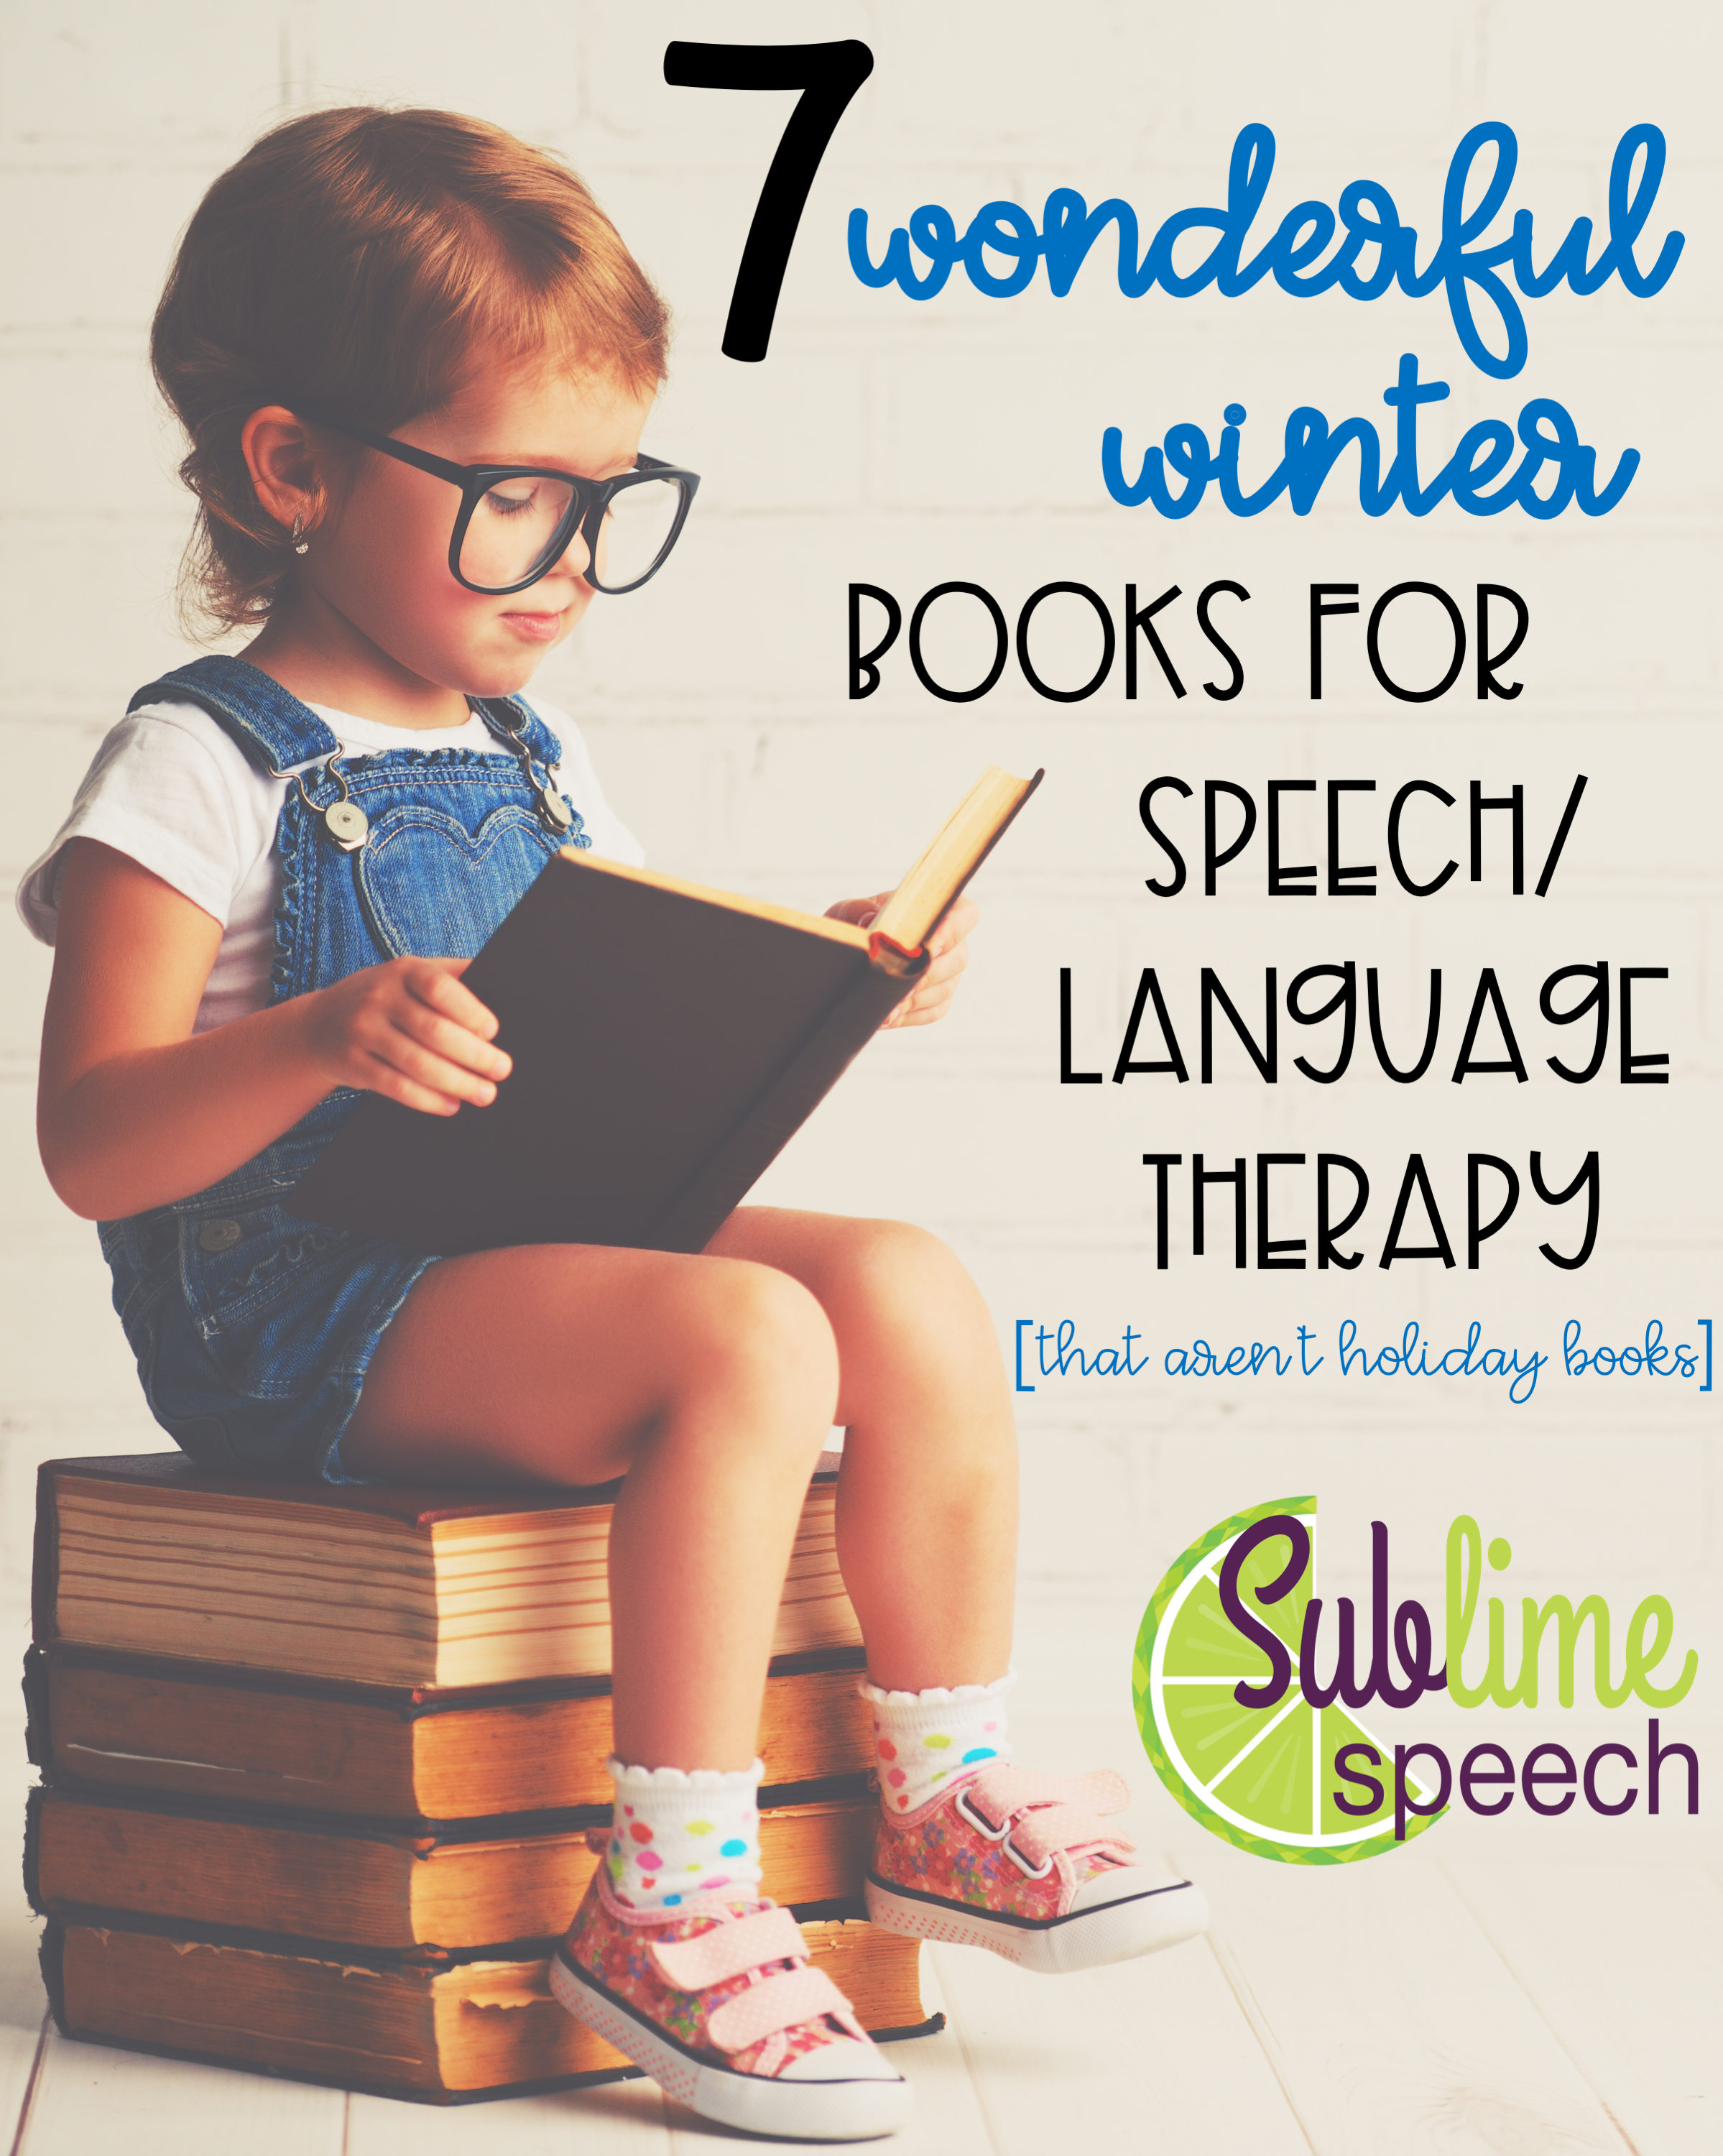 speech about reading books